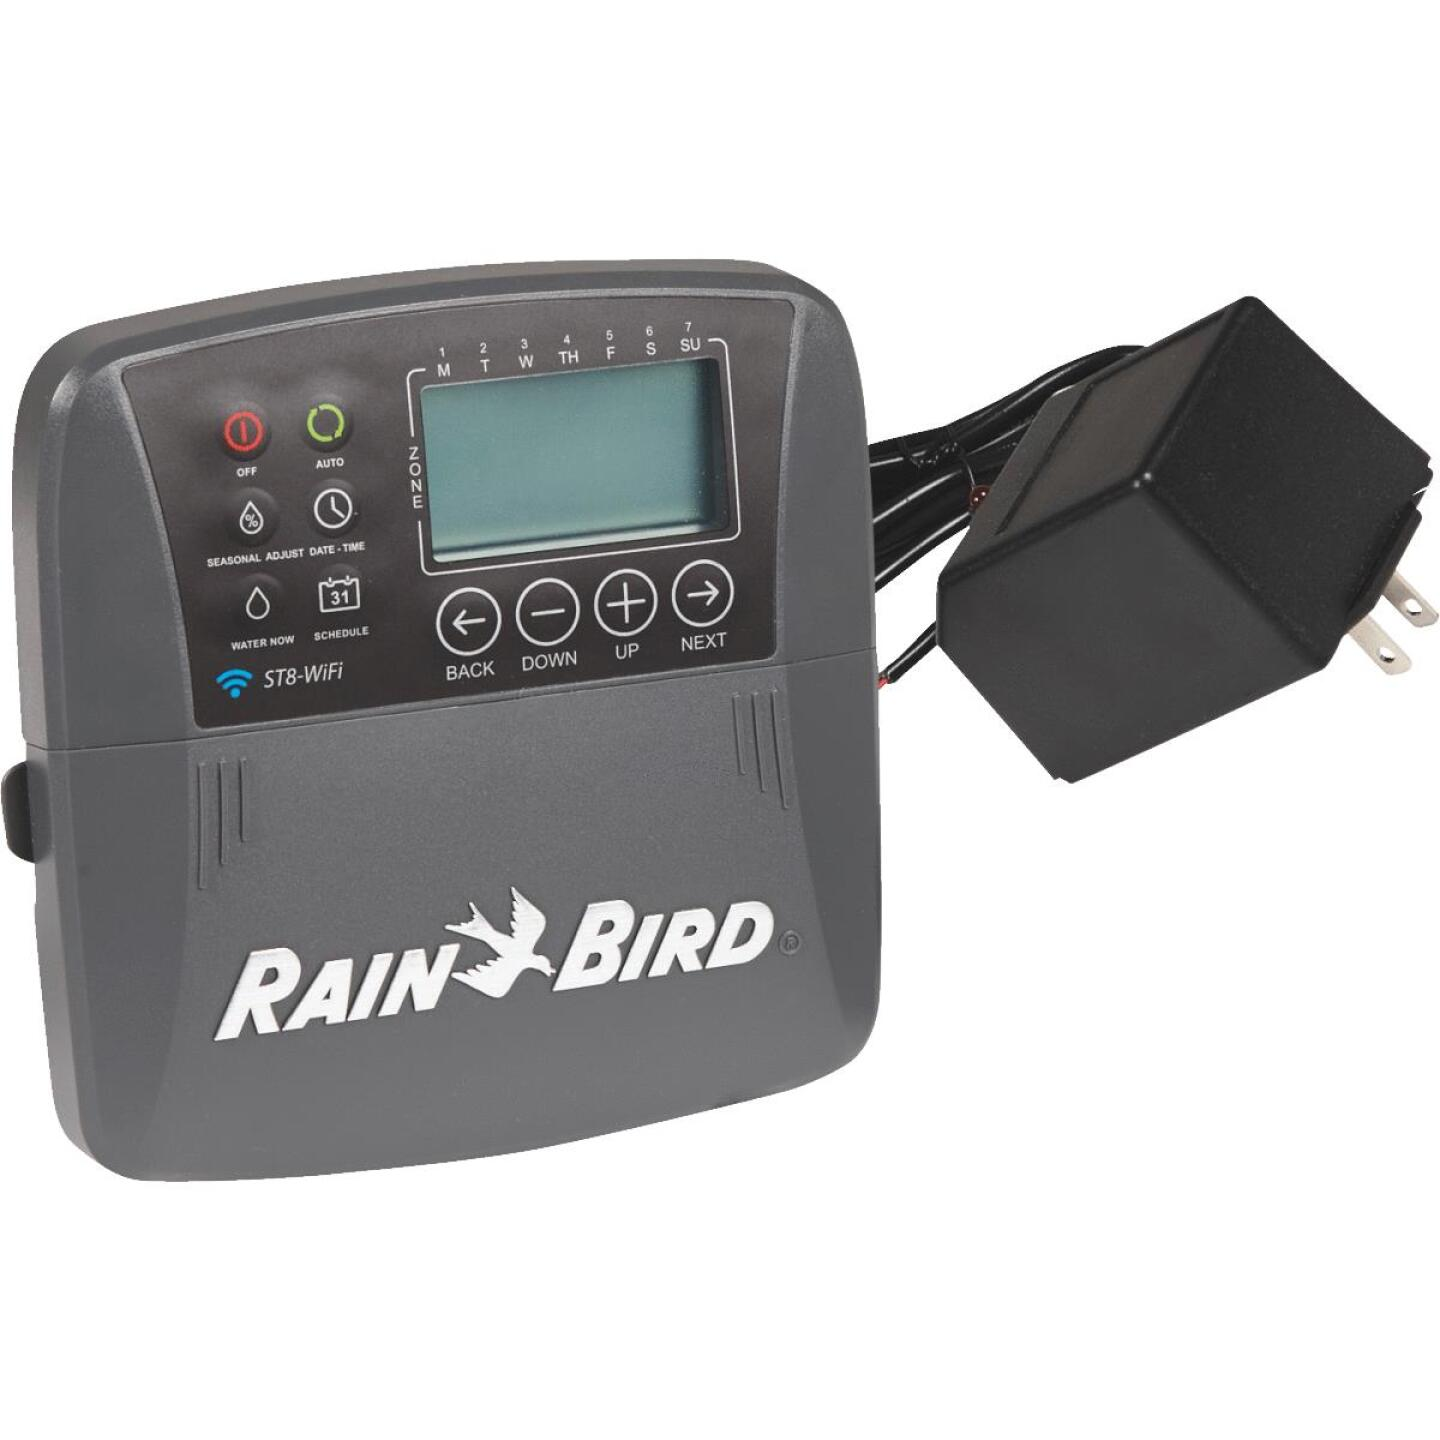 Rain Bird Smart Wi-Fi 8-Station Indoor Plug-In Water Timer Image 1